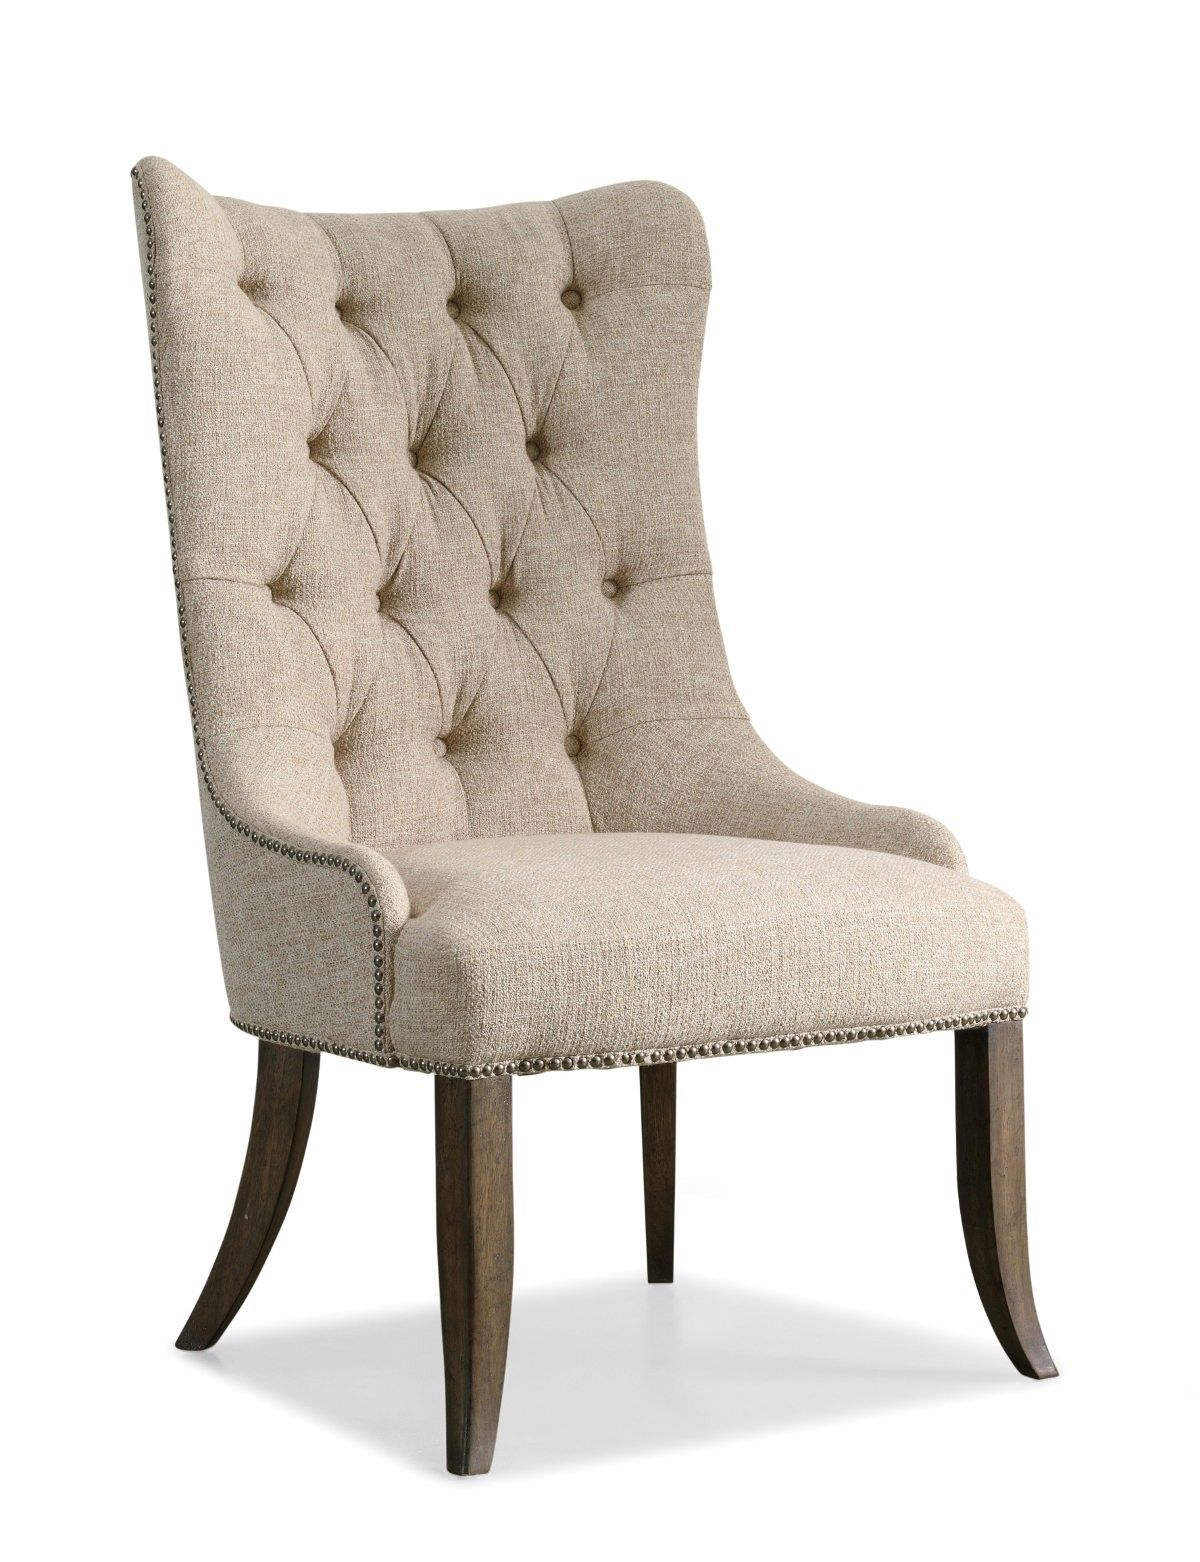 Entrancing Tufted Beige Upholstery Fabric Wingback Dining Chair